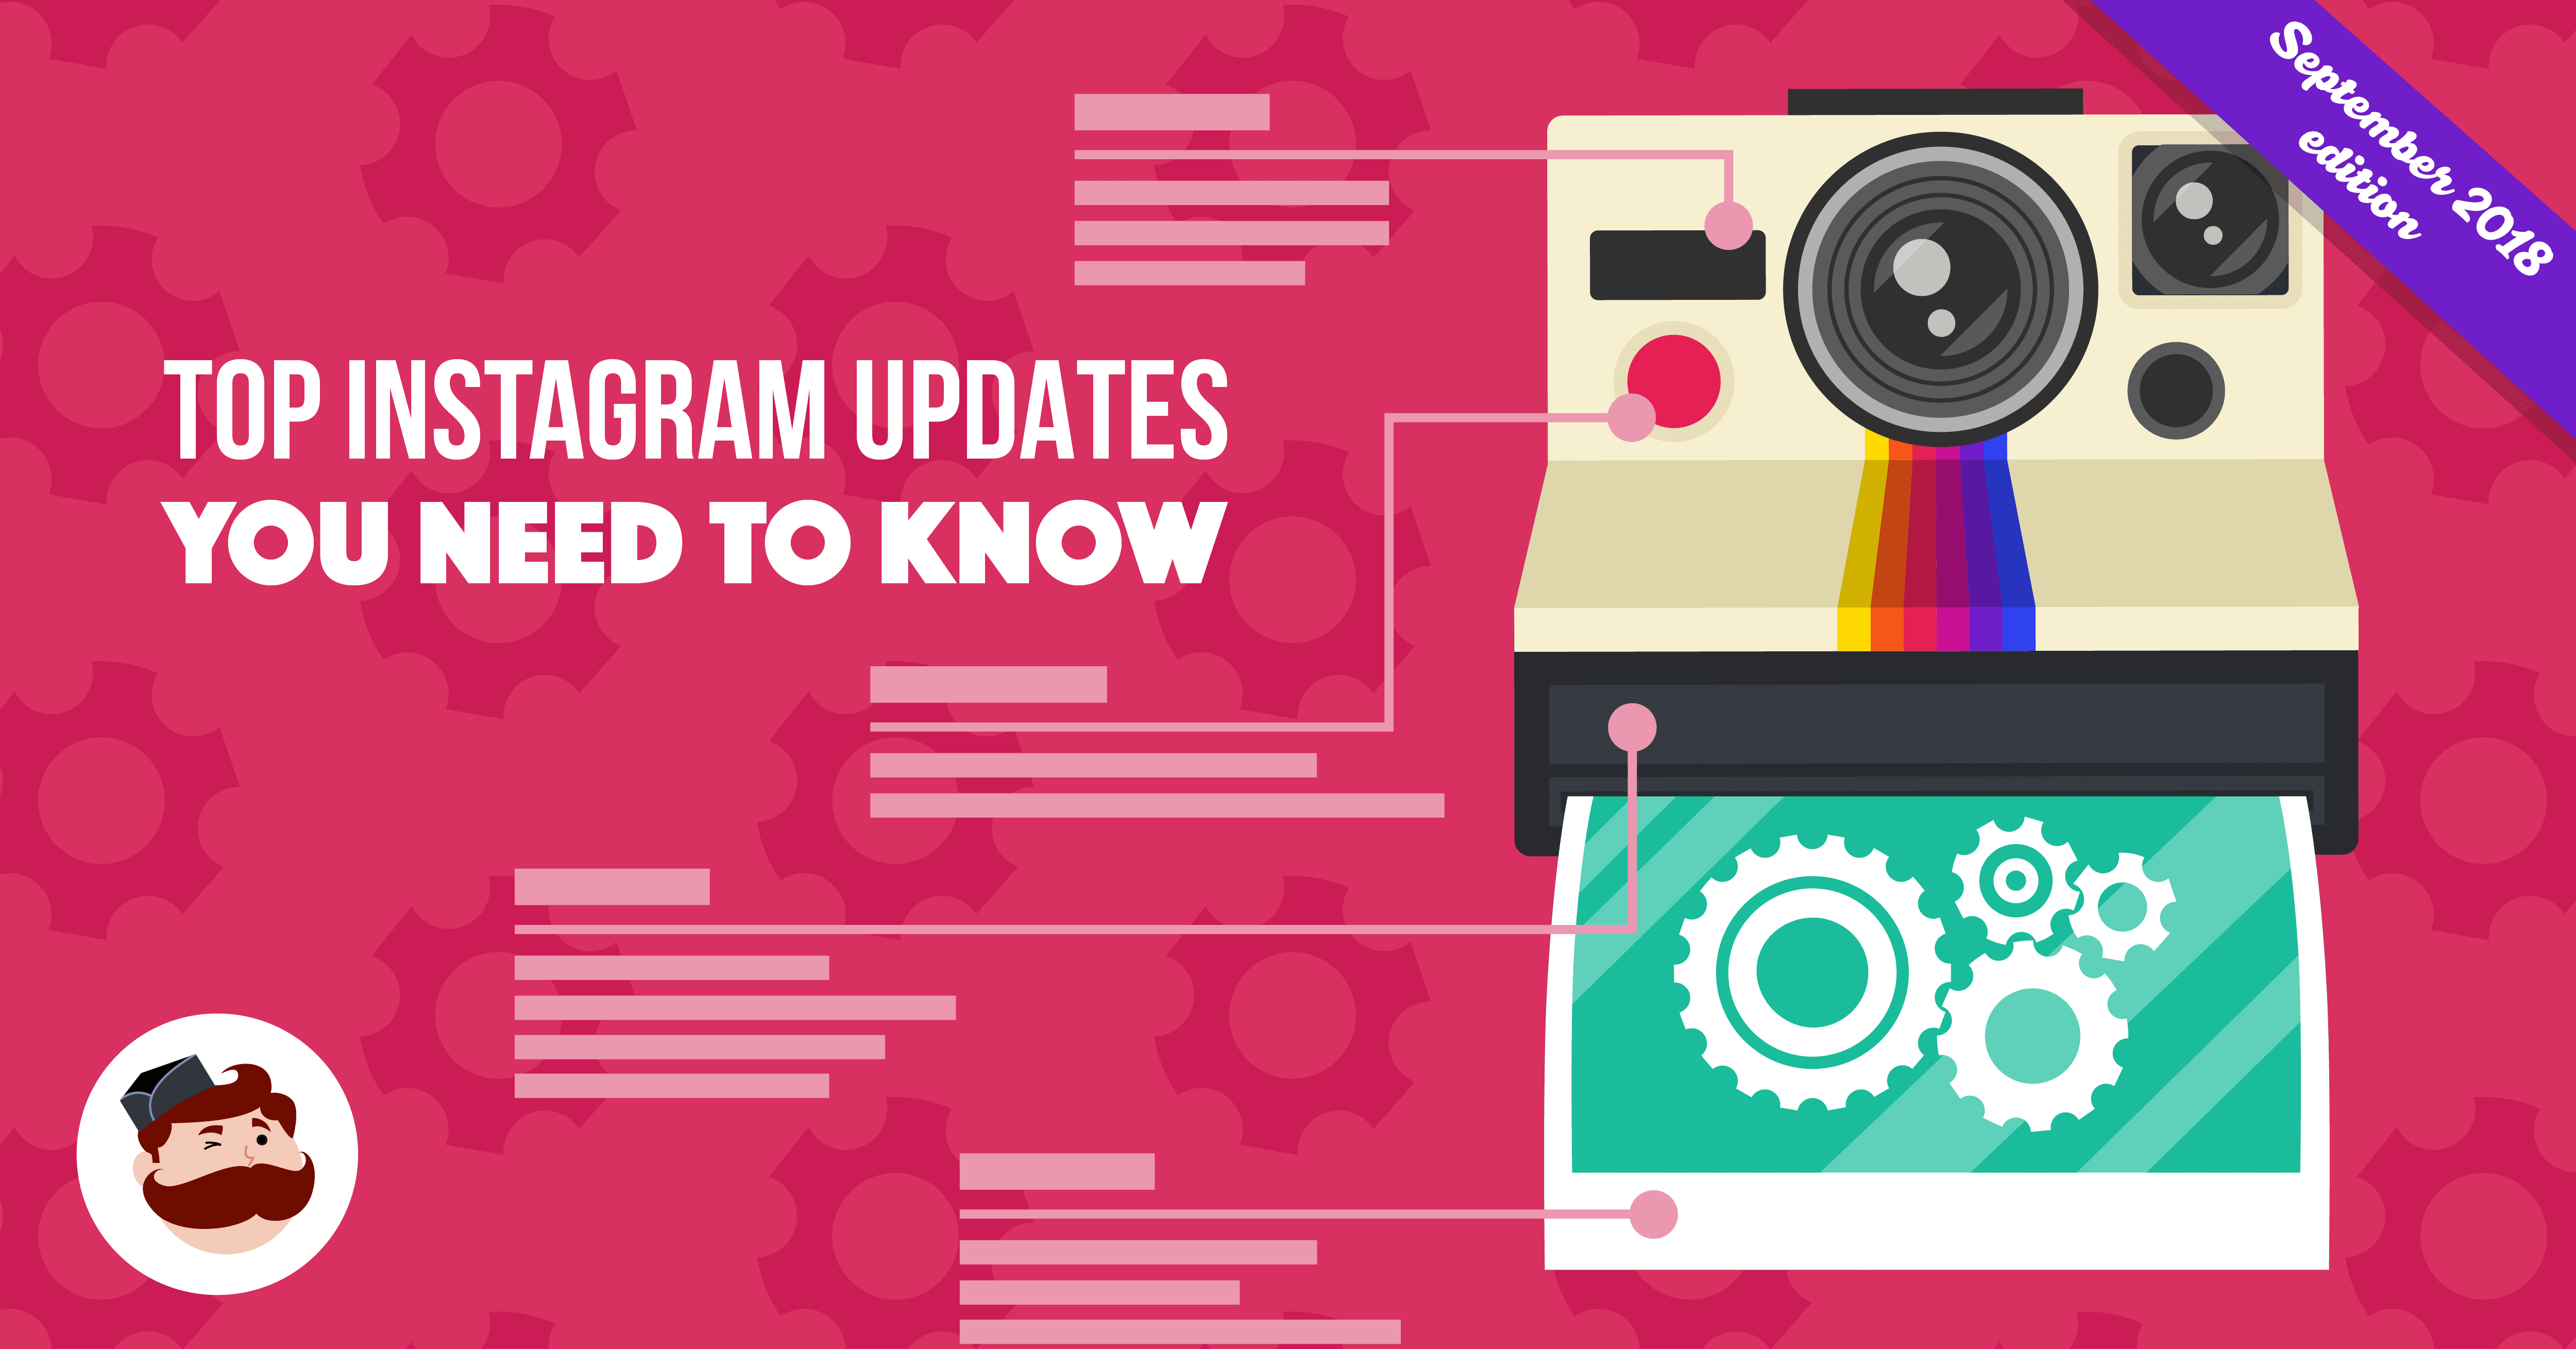 Top Instagram Updates You Need To Know In 2018 September Edition